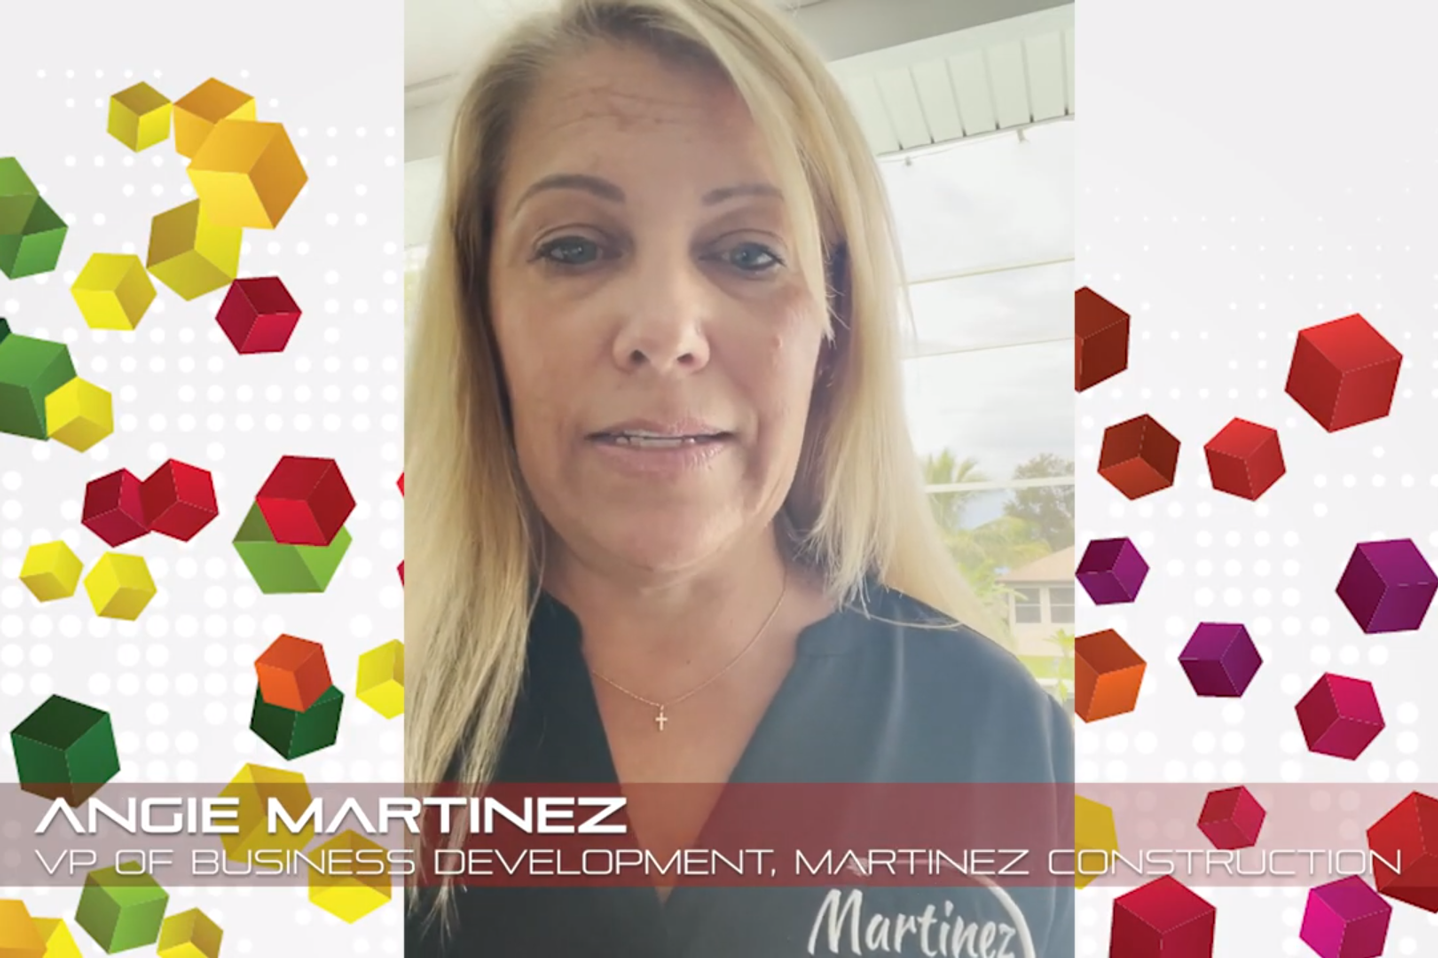 <h3>Angie Martinez is ready for SBC!</h3>